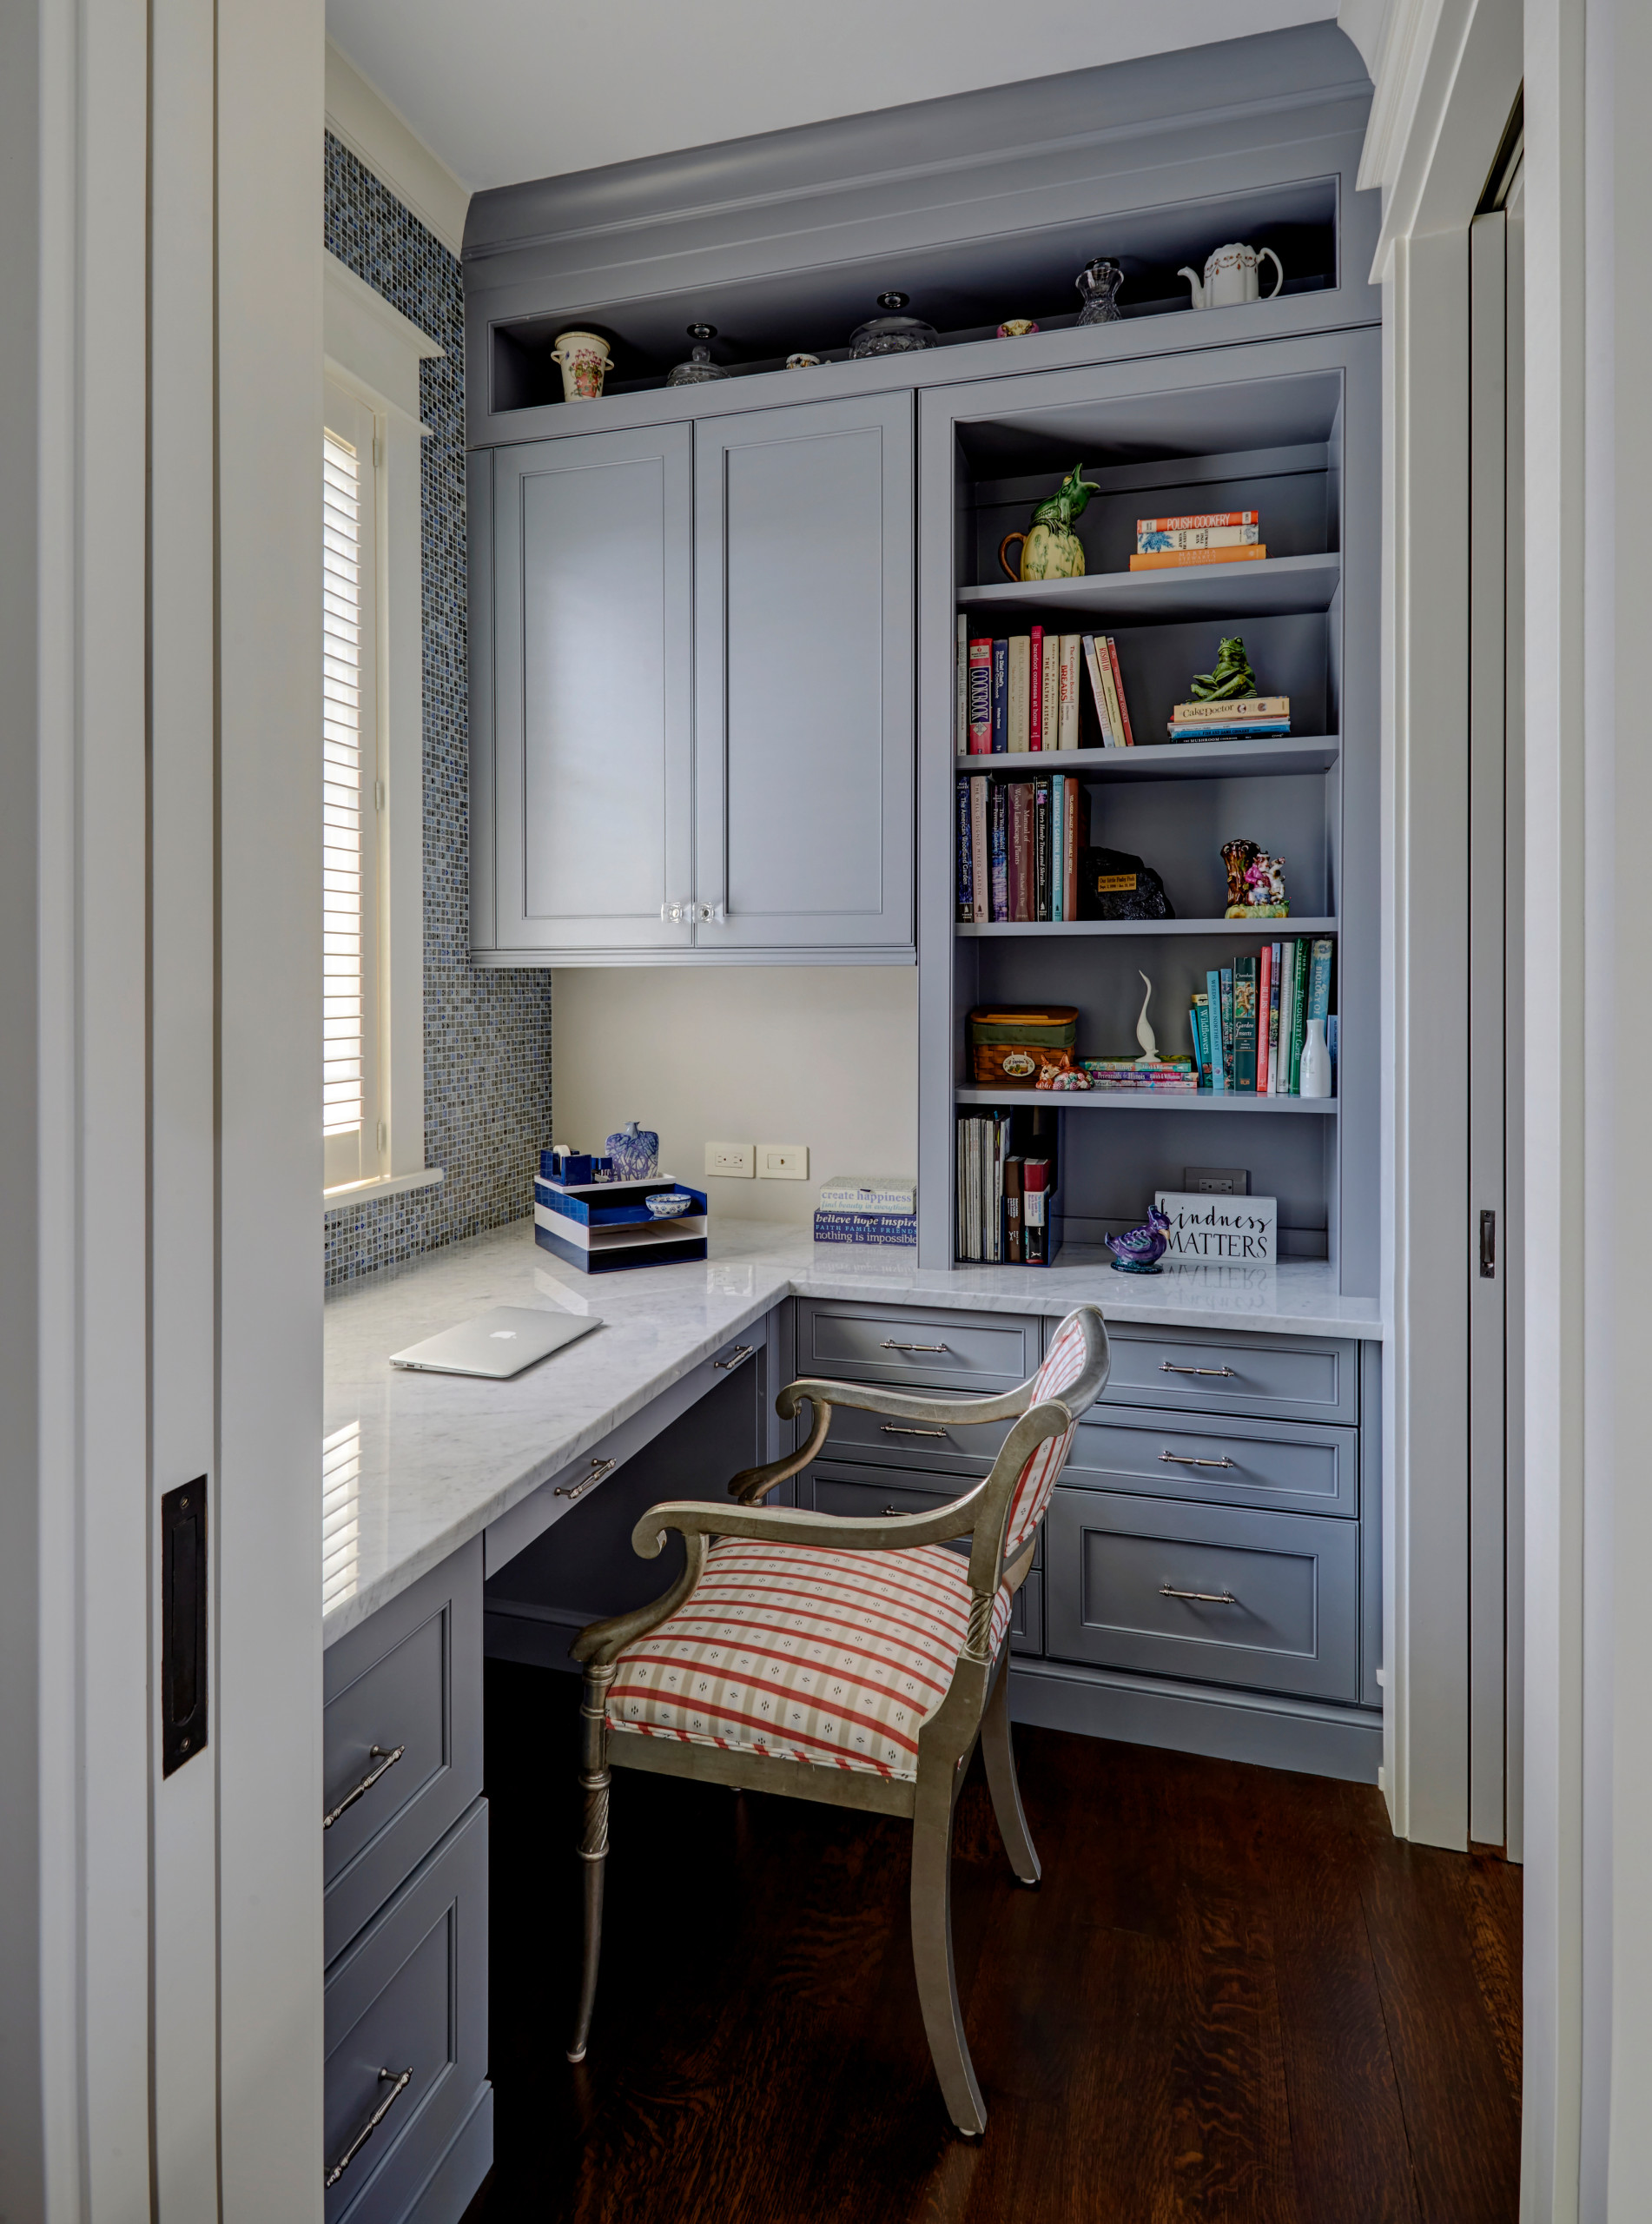 75 Beautiful Small Study Room Pictures Ideas December 2020 Houzz